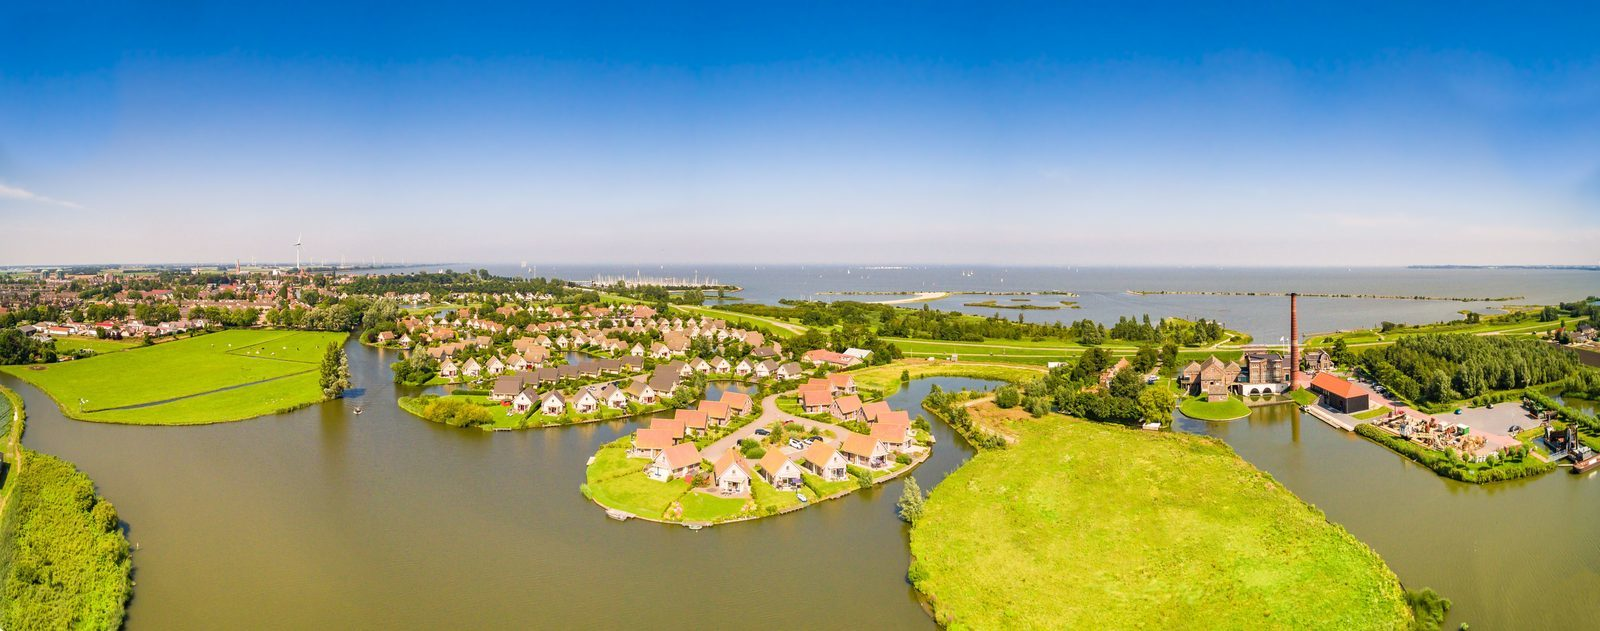 Book a stay in water-rich Medemblik